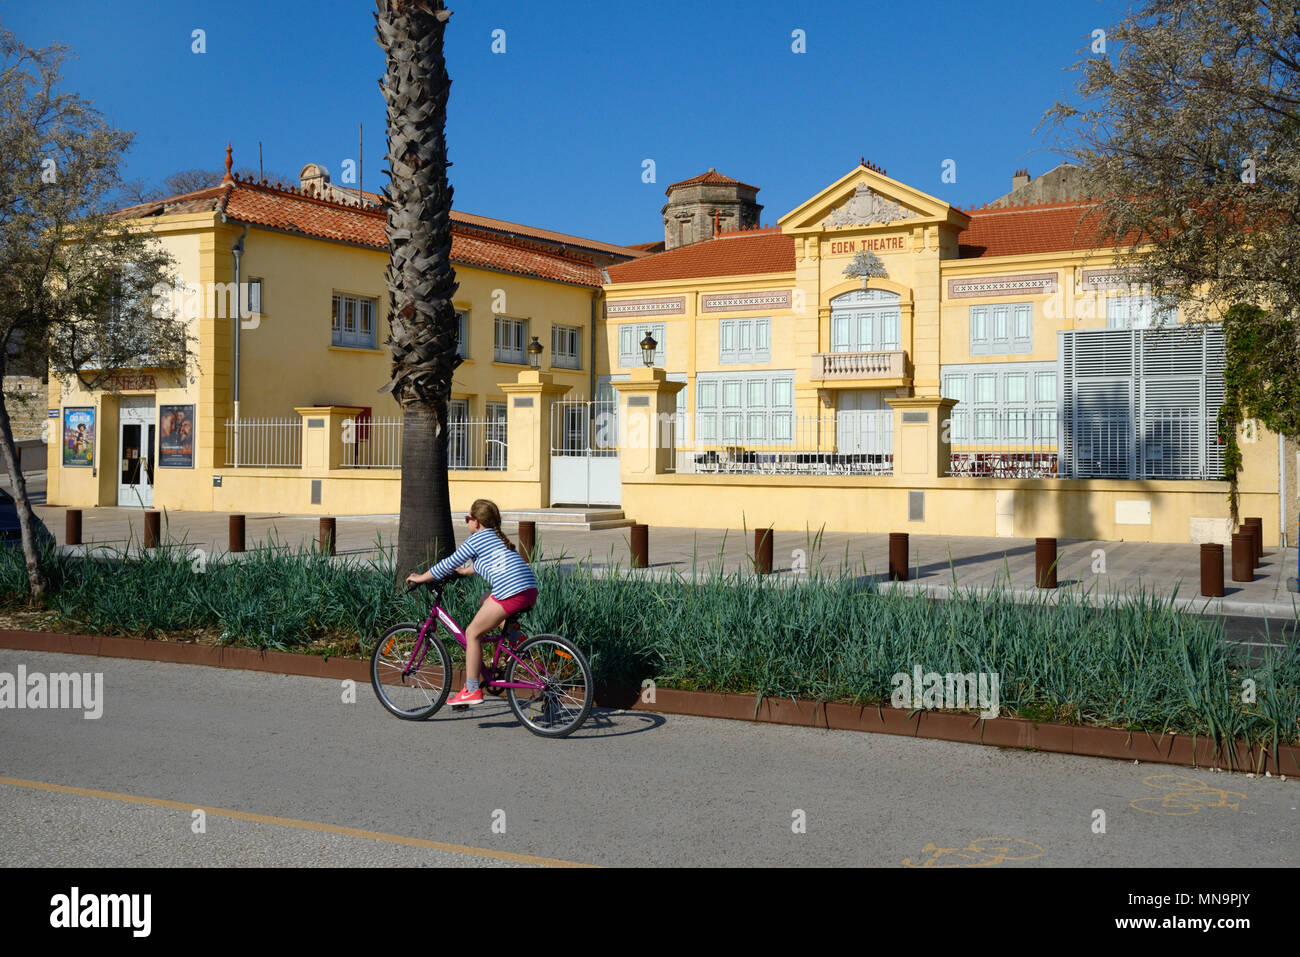 Girl Cycling in Cycle Lane Past the Historic Eden Theatre or Eden Theater, one of the world's earliest cinema or movie theatre, La Ciotat, France - Stock Image